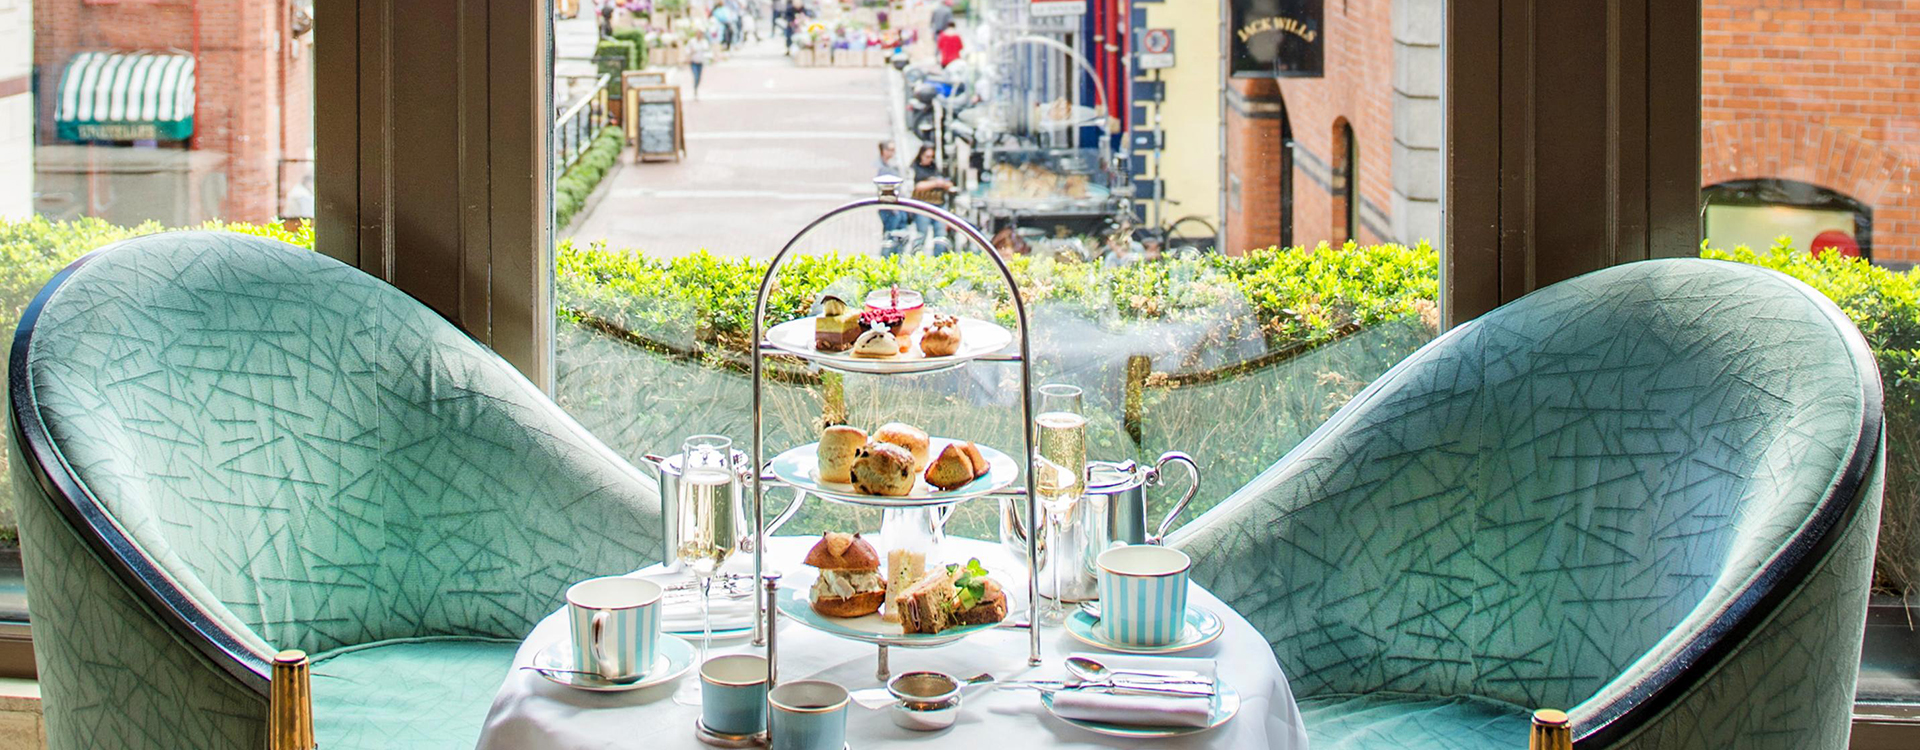 Champagne Afternoon Tea on The Gallery